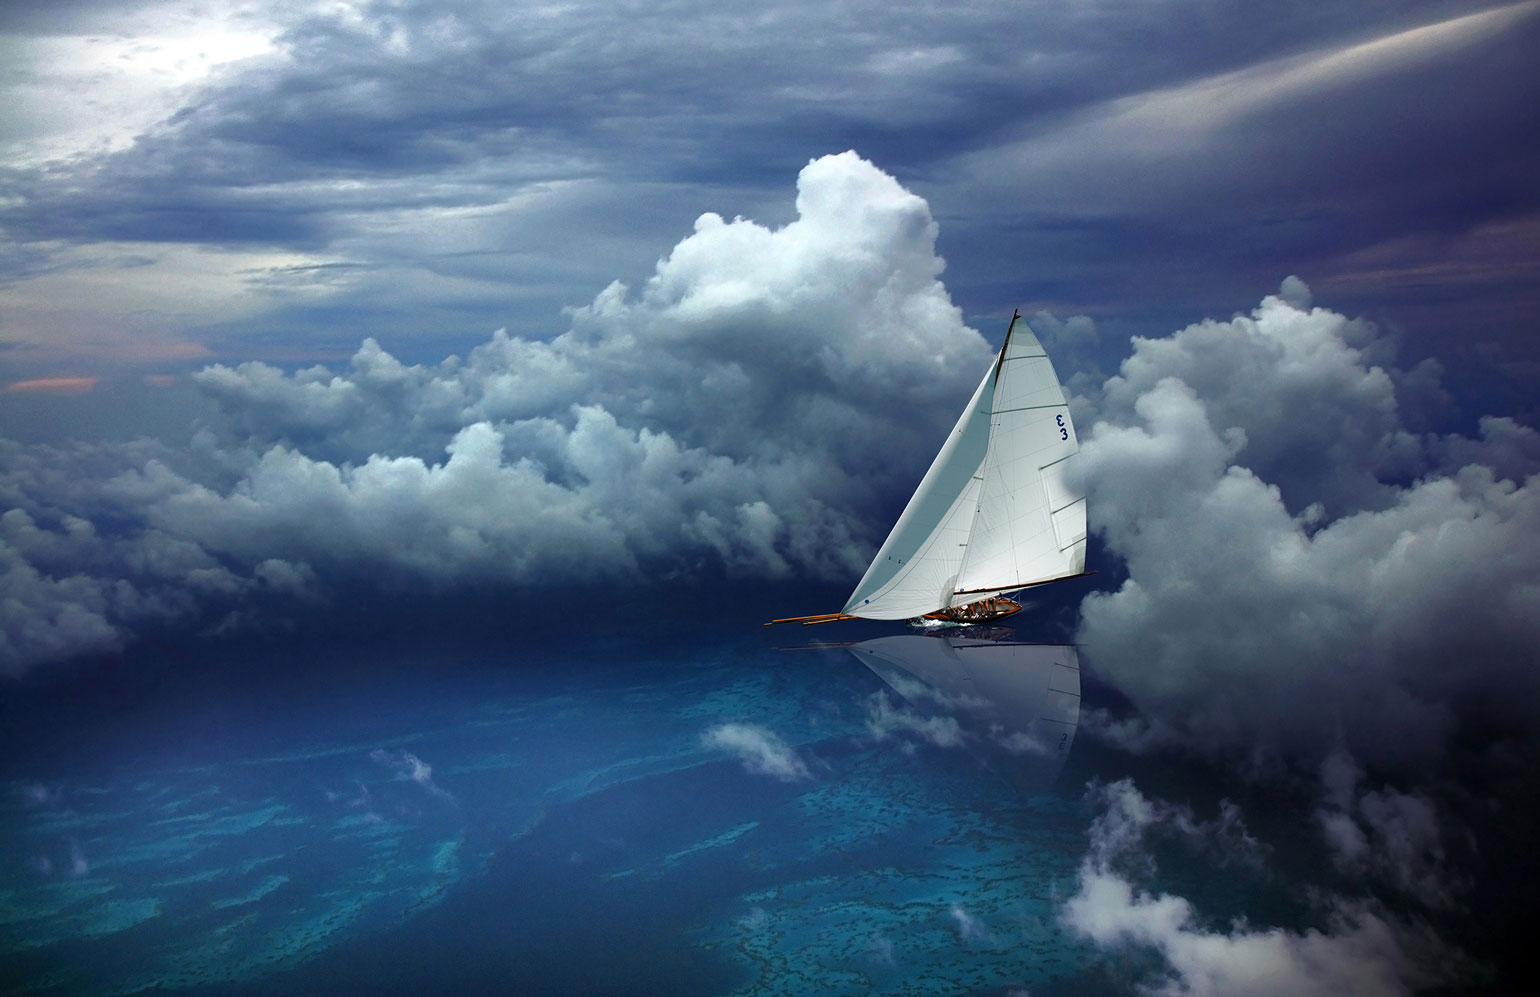 Dream Sailing by Peter Matcham